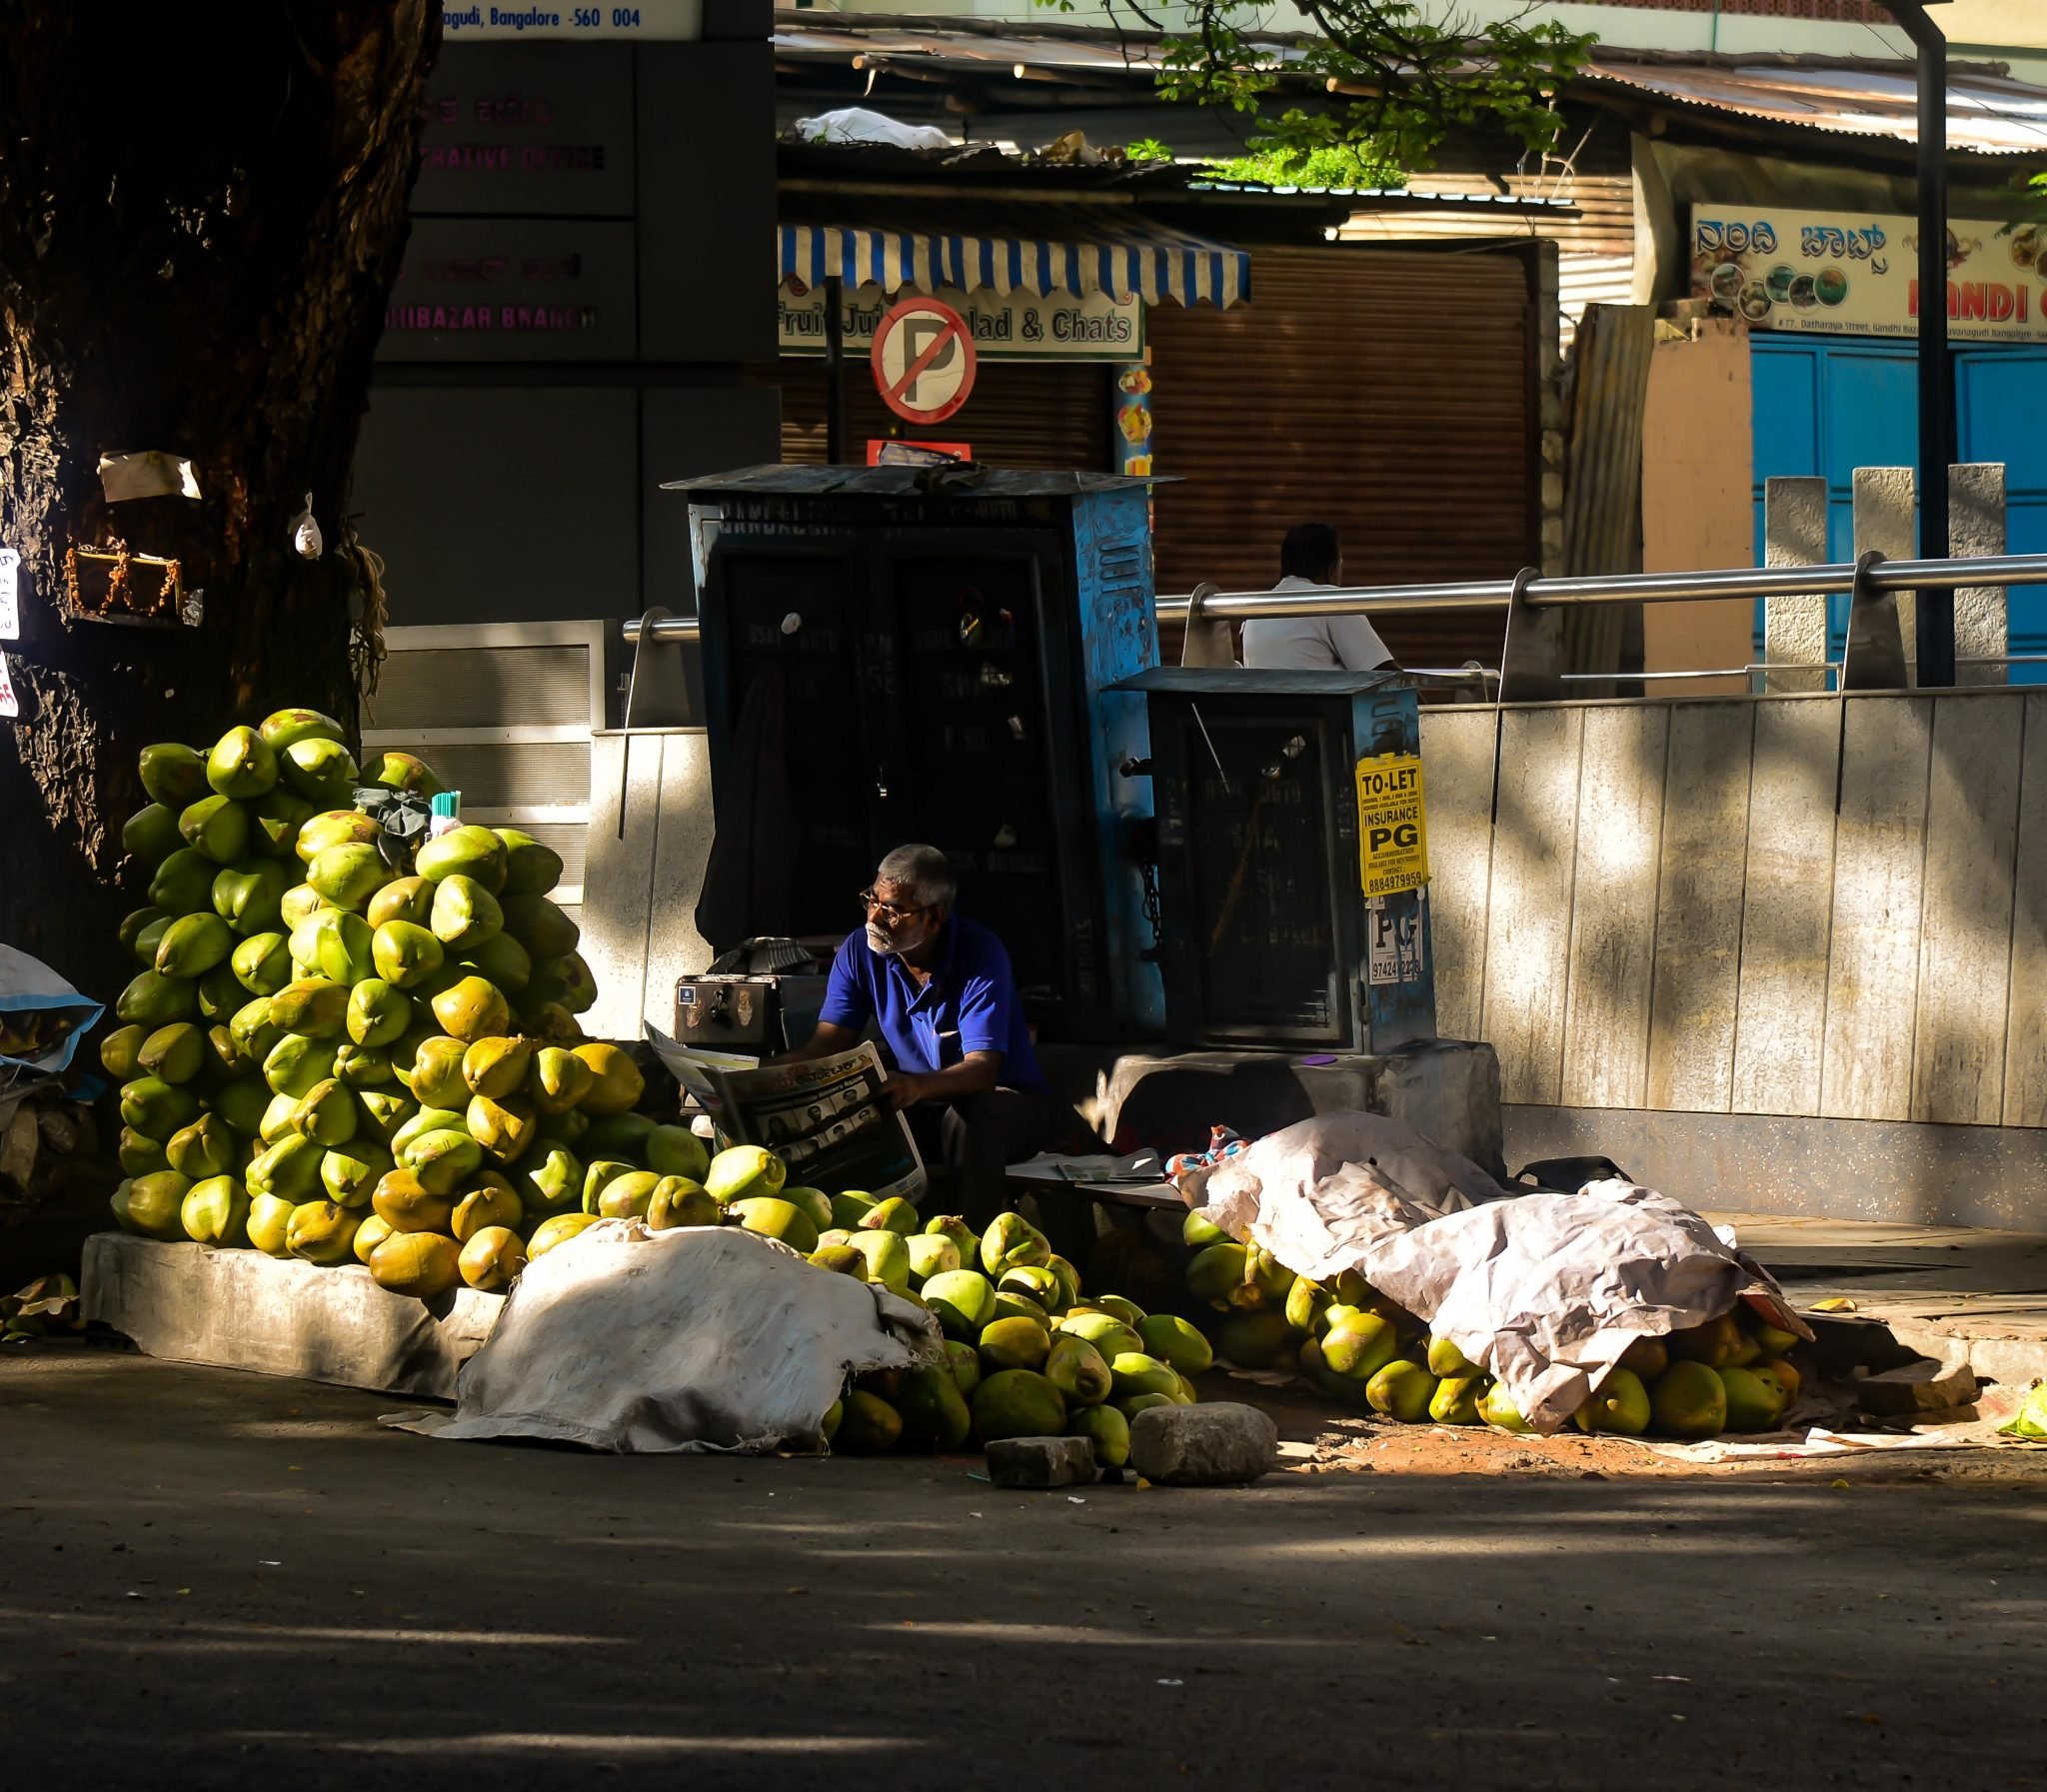 A tender coconut vendor takes advantage of a lull in sales to catch up on the daily news. Photo credit: Suri Venkatachalam